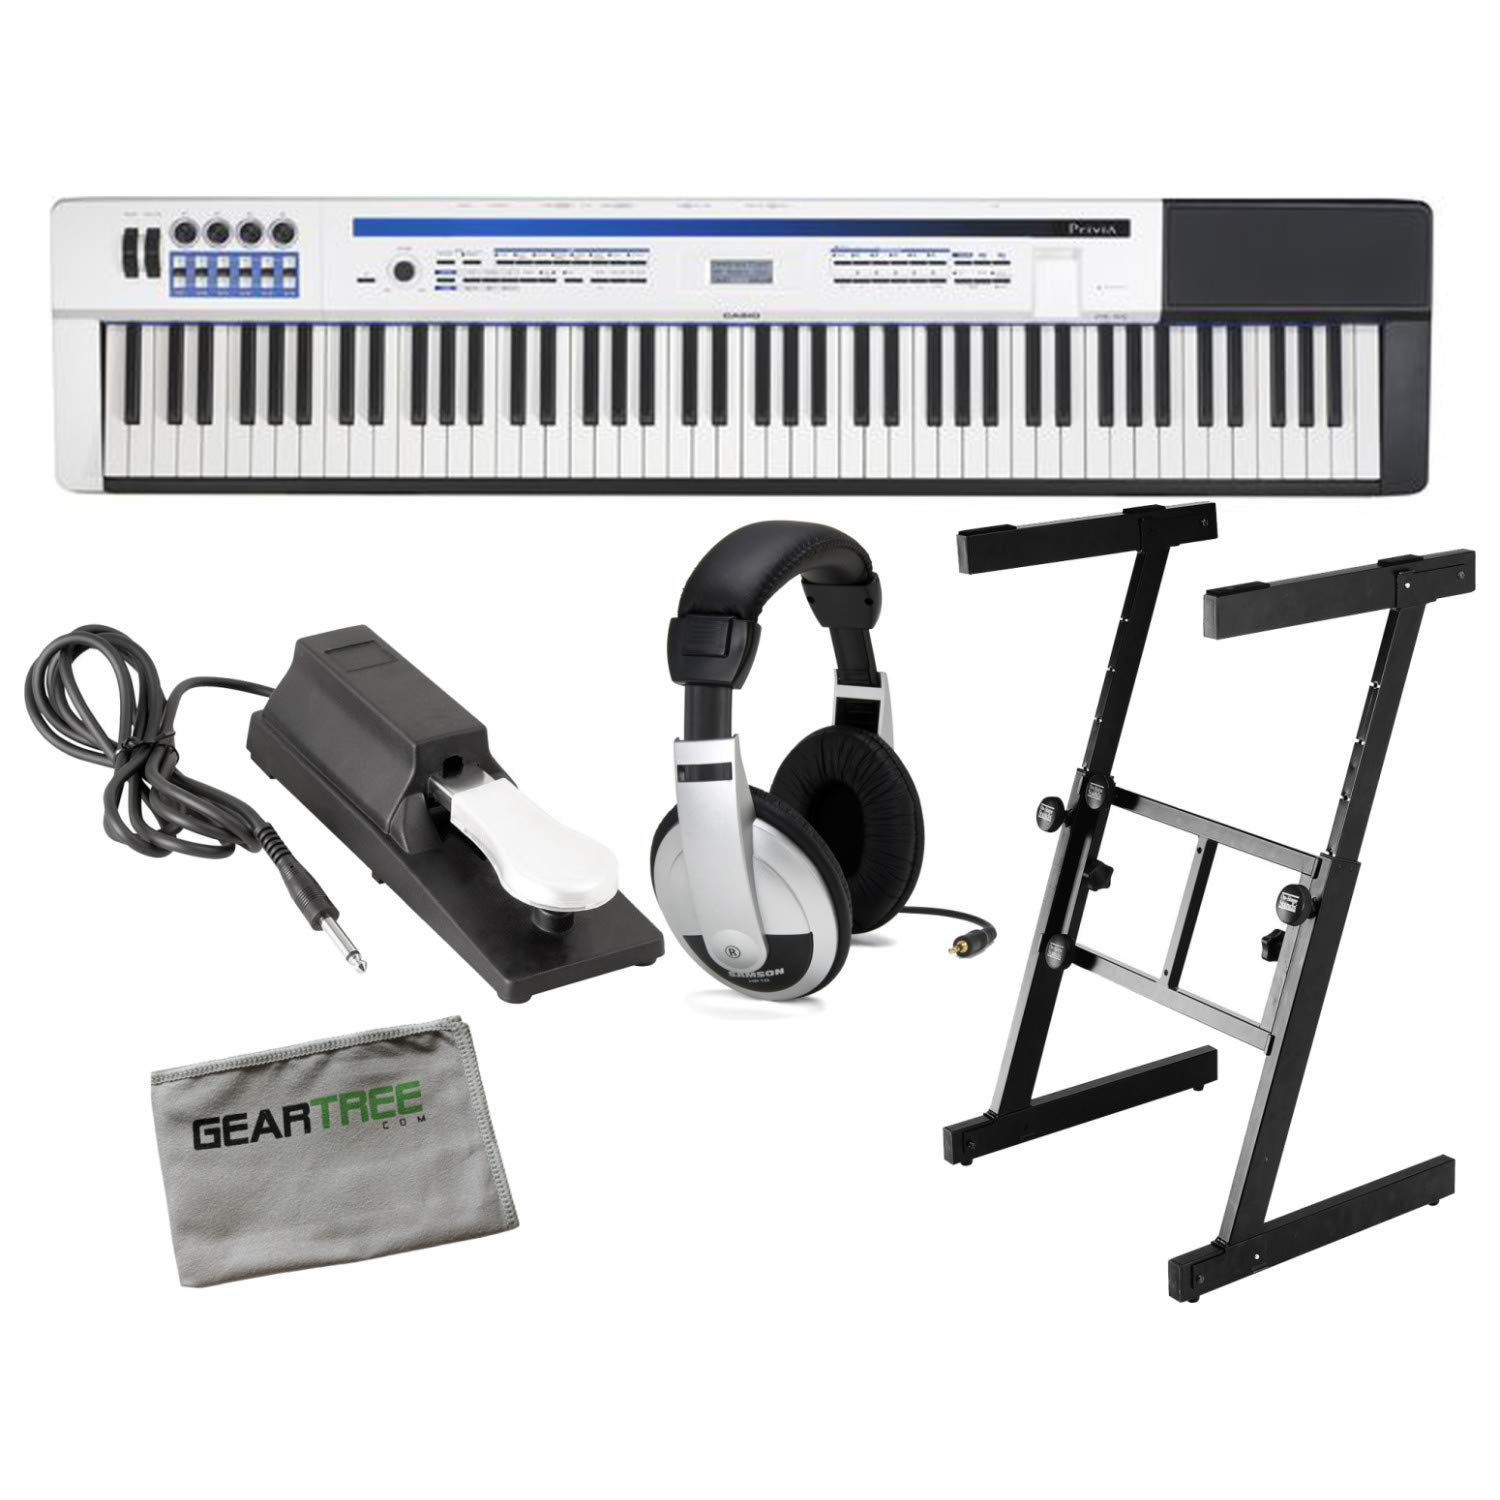 Casio PX-5S Privia Pro Digital Stage Piano 88 Key Weighted Hammer Action with Stand, Sustain Pedal, and Headphones by Casio